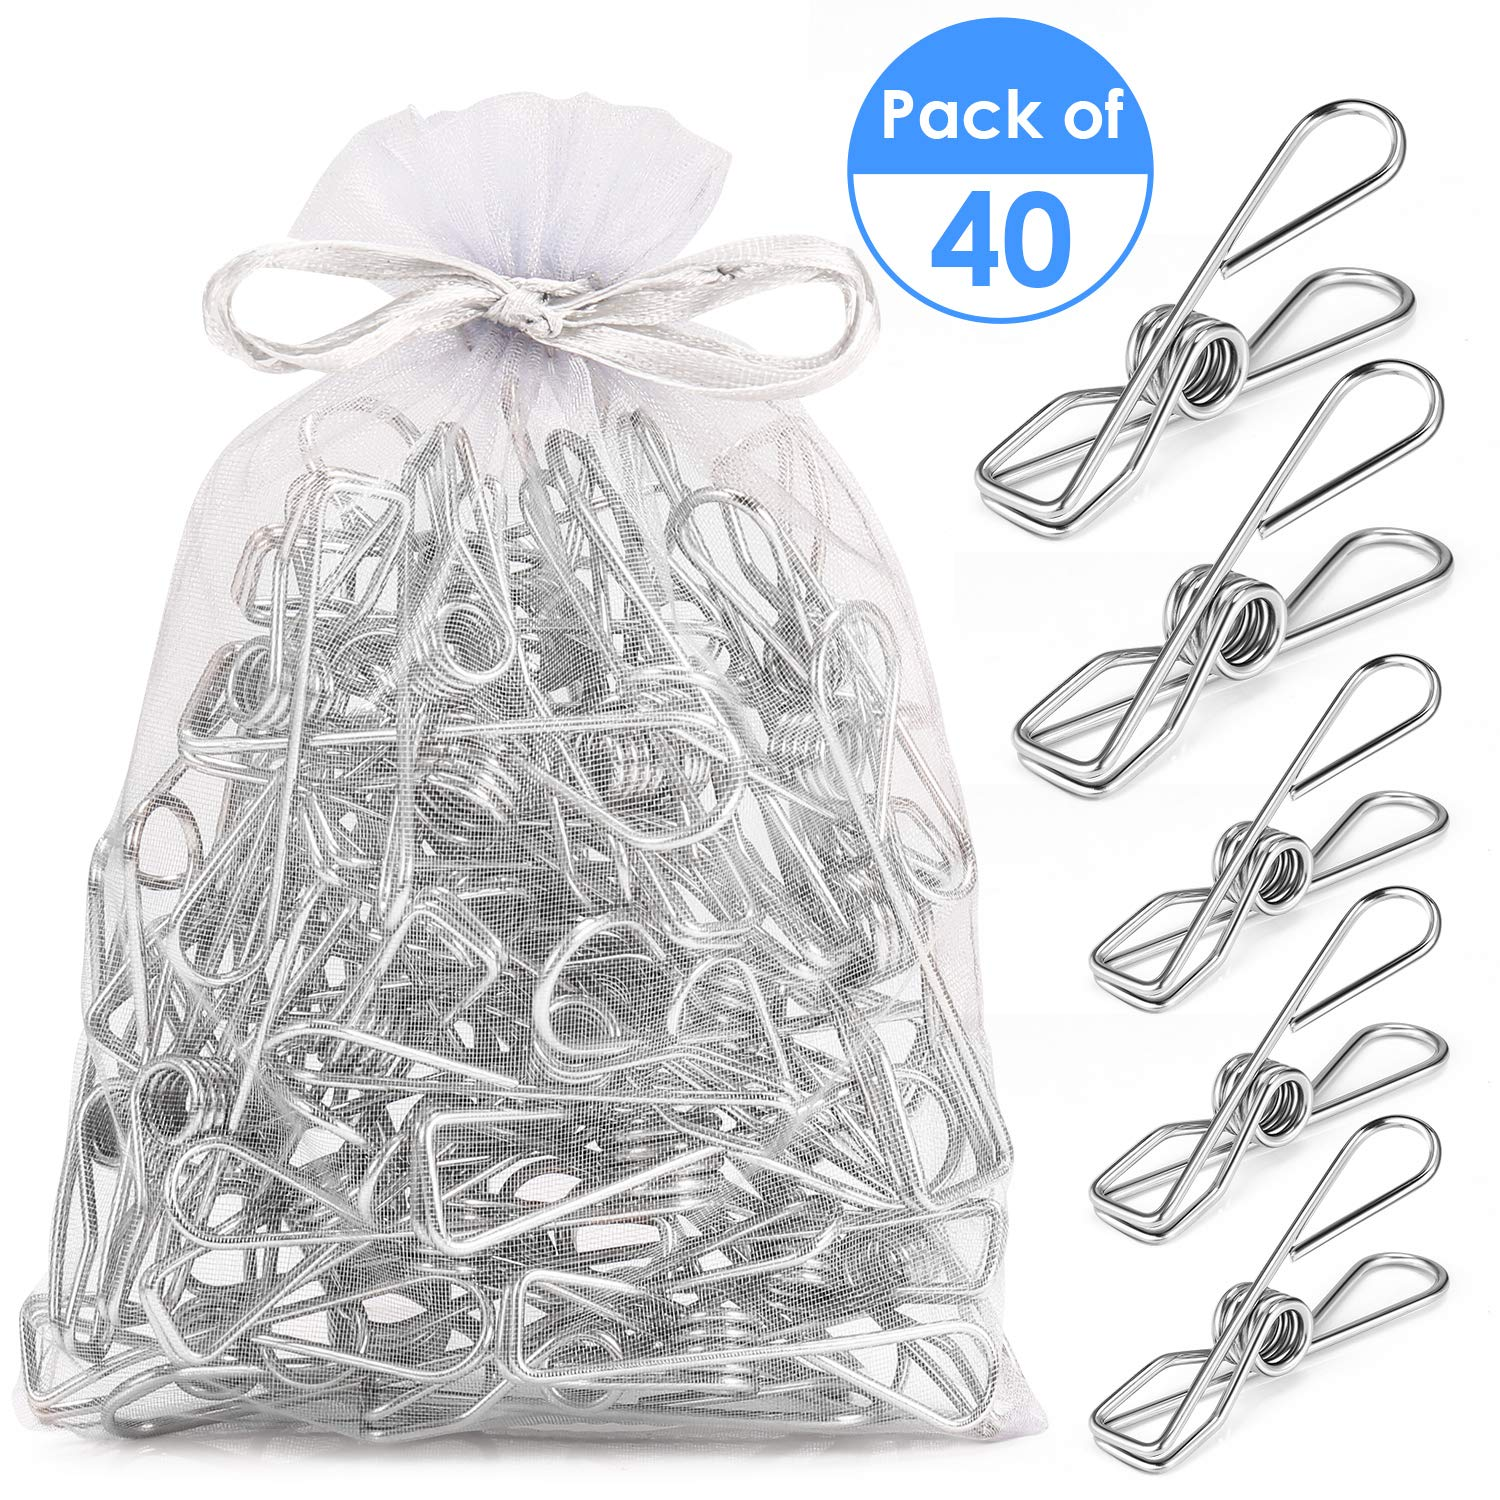 Fabsome Clothes Pegs Chip Clips Pack of 40, Long-lasting Strong-Grip Metal Laundry Clips for Washing Line, Snack Bags…